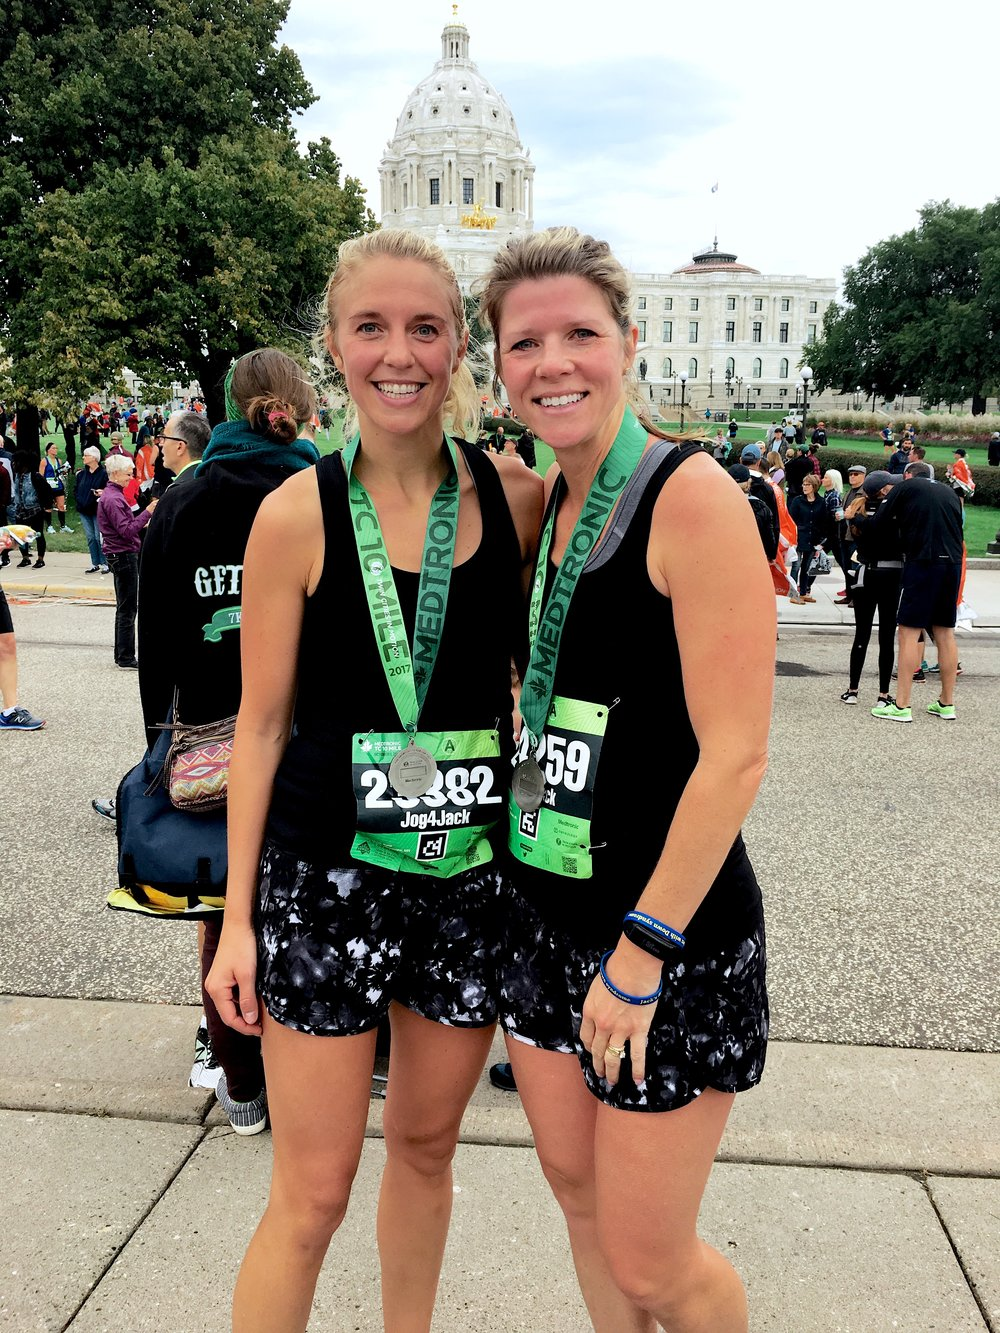 Katie Bjorklund, left, and Carissa Carroll, right, from the Medtronic Twin Cities 10 Mile Marathon in October of 2017. Photo courtesy of Katie Bjorklund